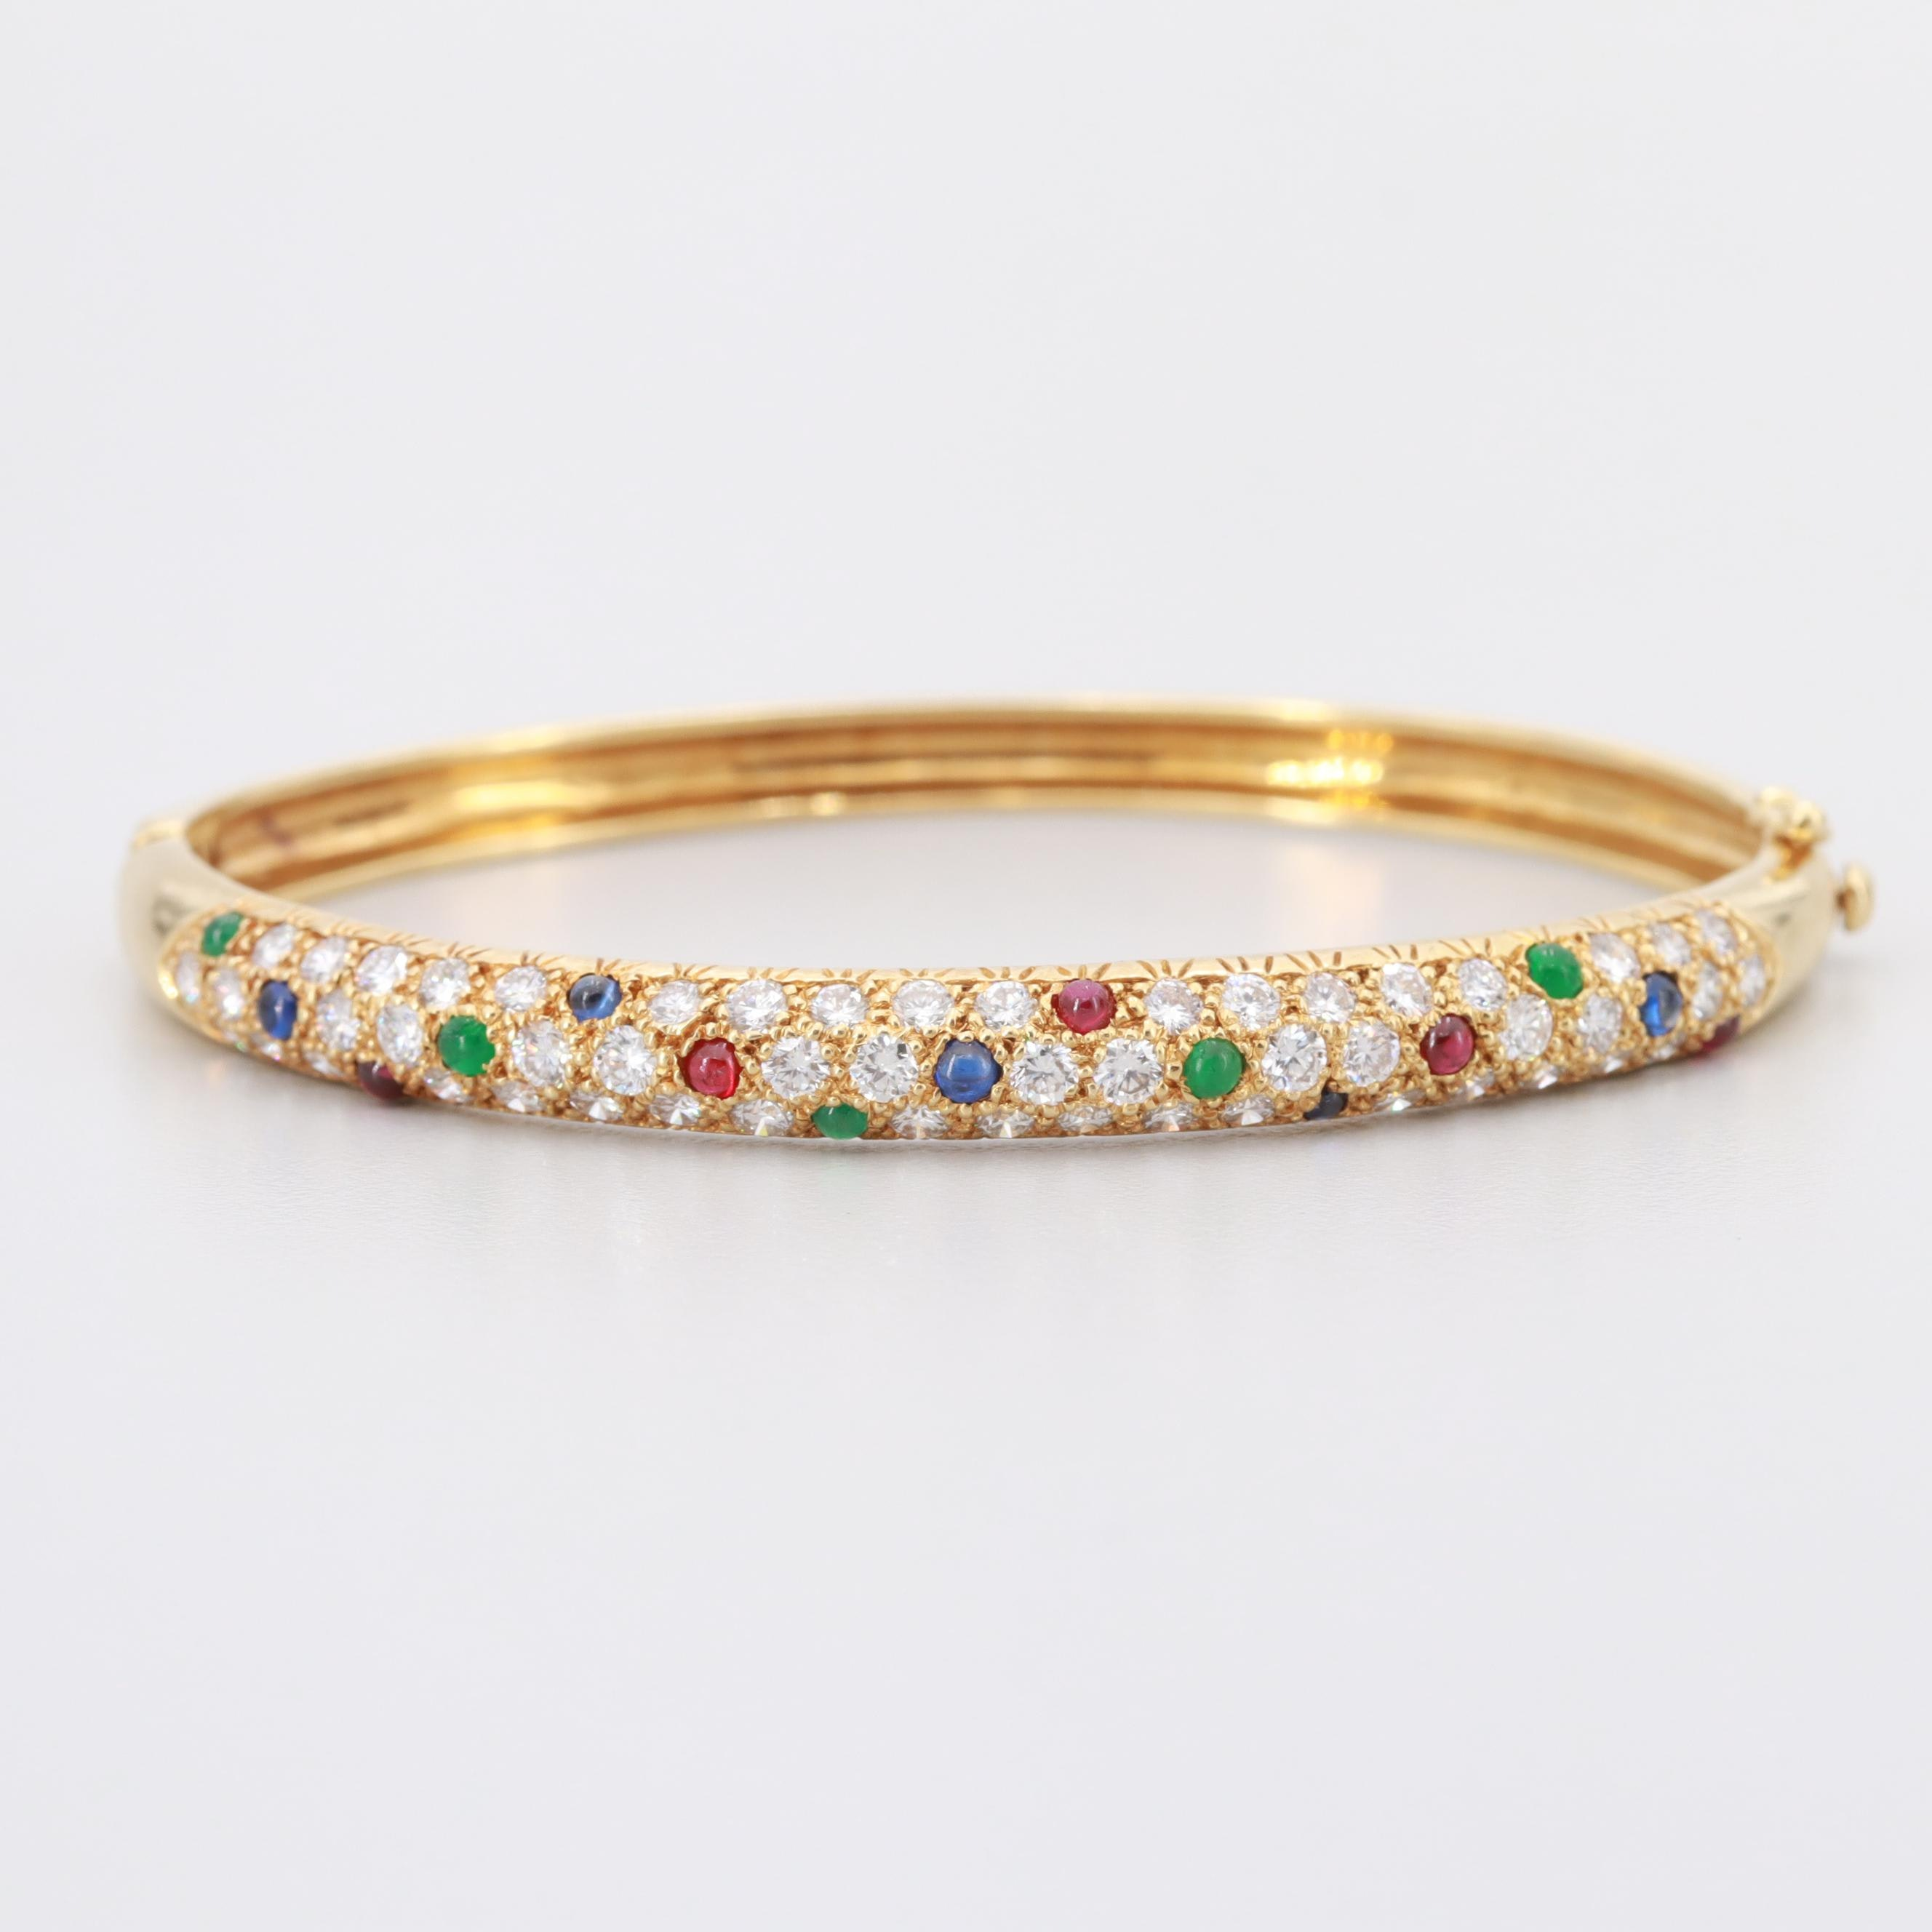 18K Yellow Gold 2.73 CTW Diamond, Sapphire, Ruby and Emerald Hinged Bracelet